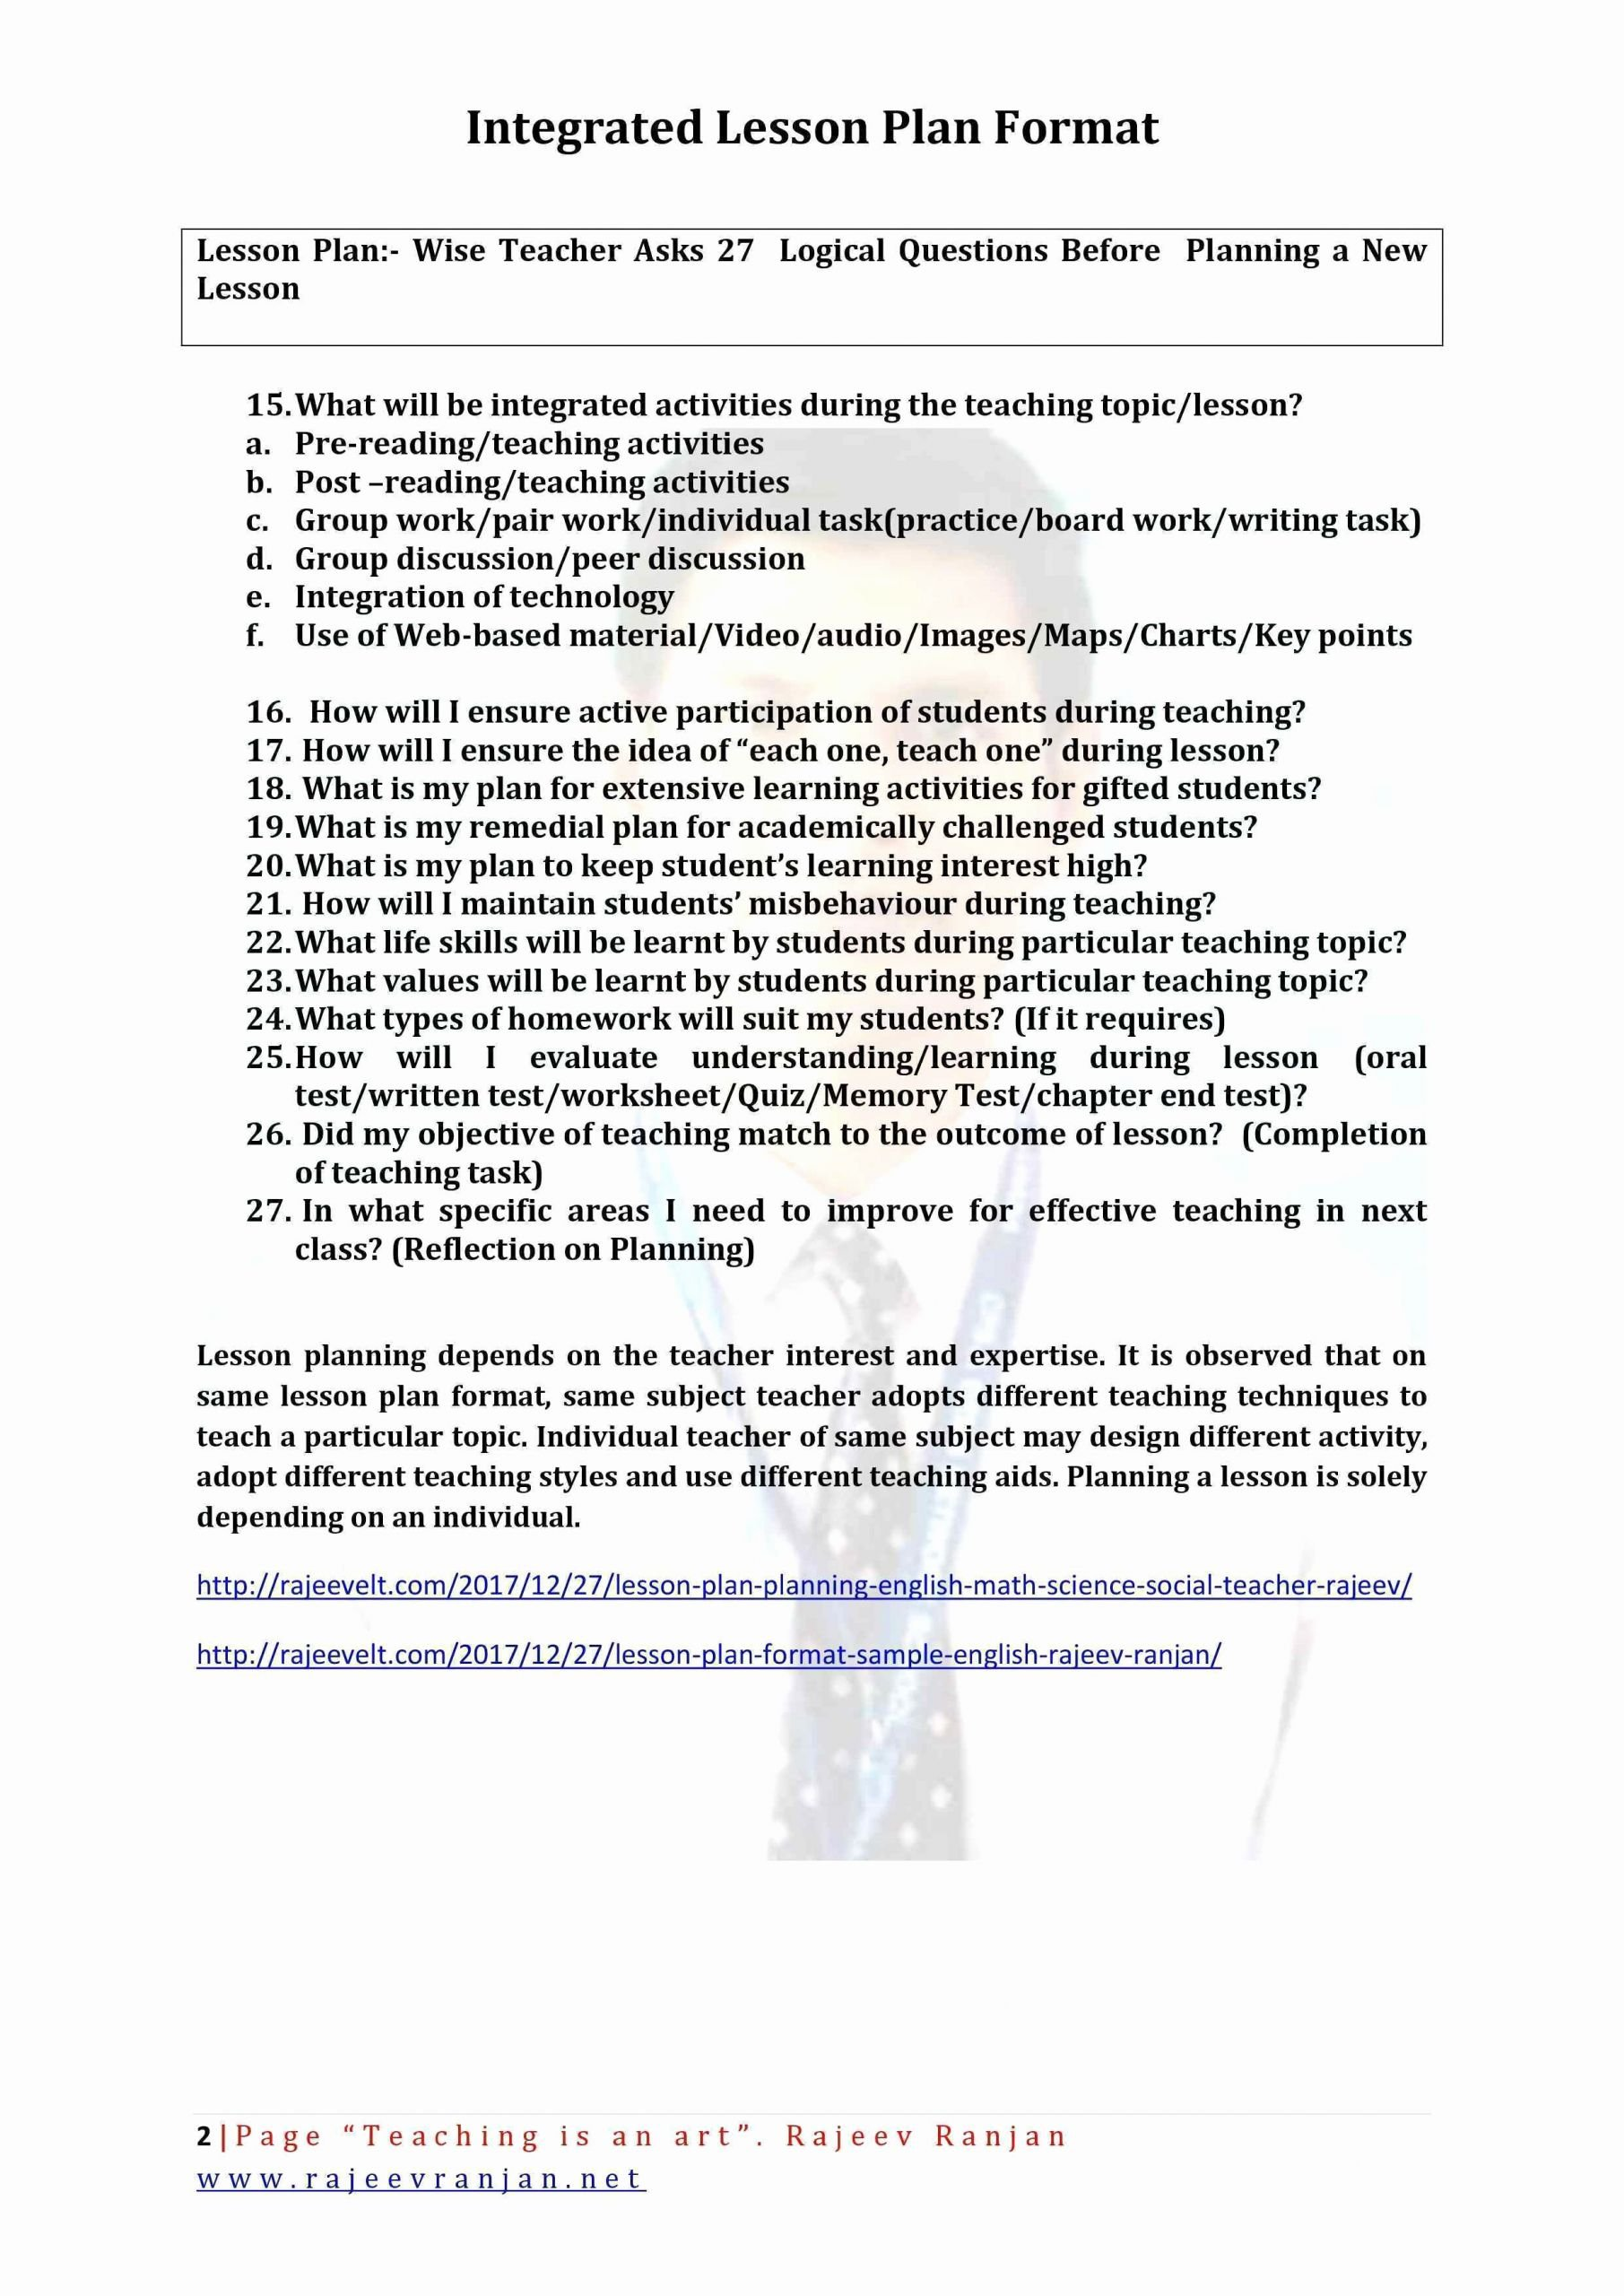 Integrated Lesson Plan Template Elegant 13 14 Lesson Plan Sample In English